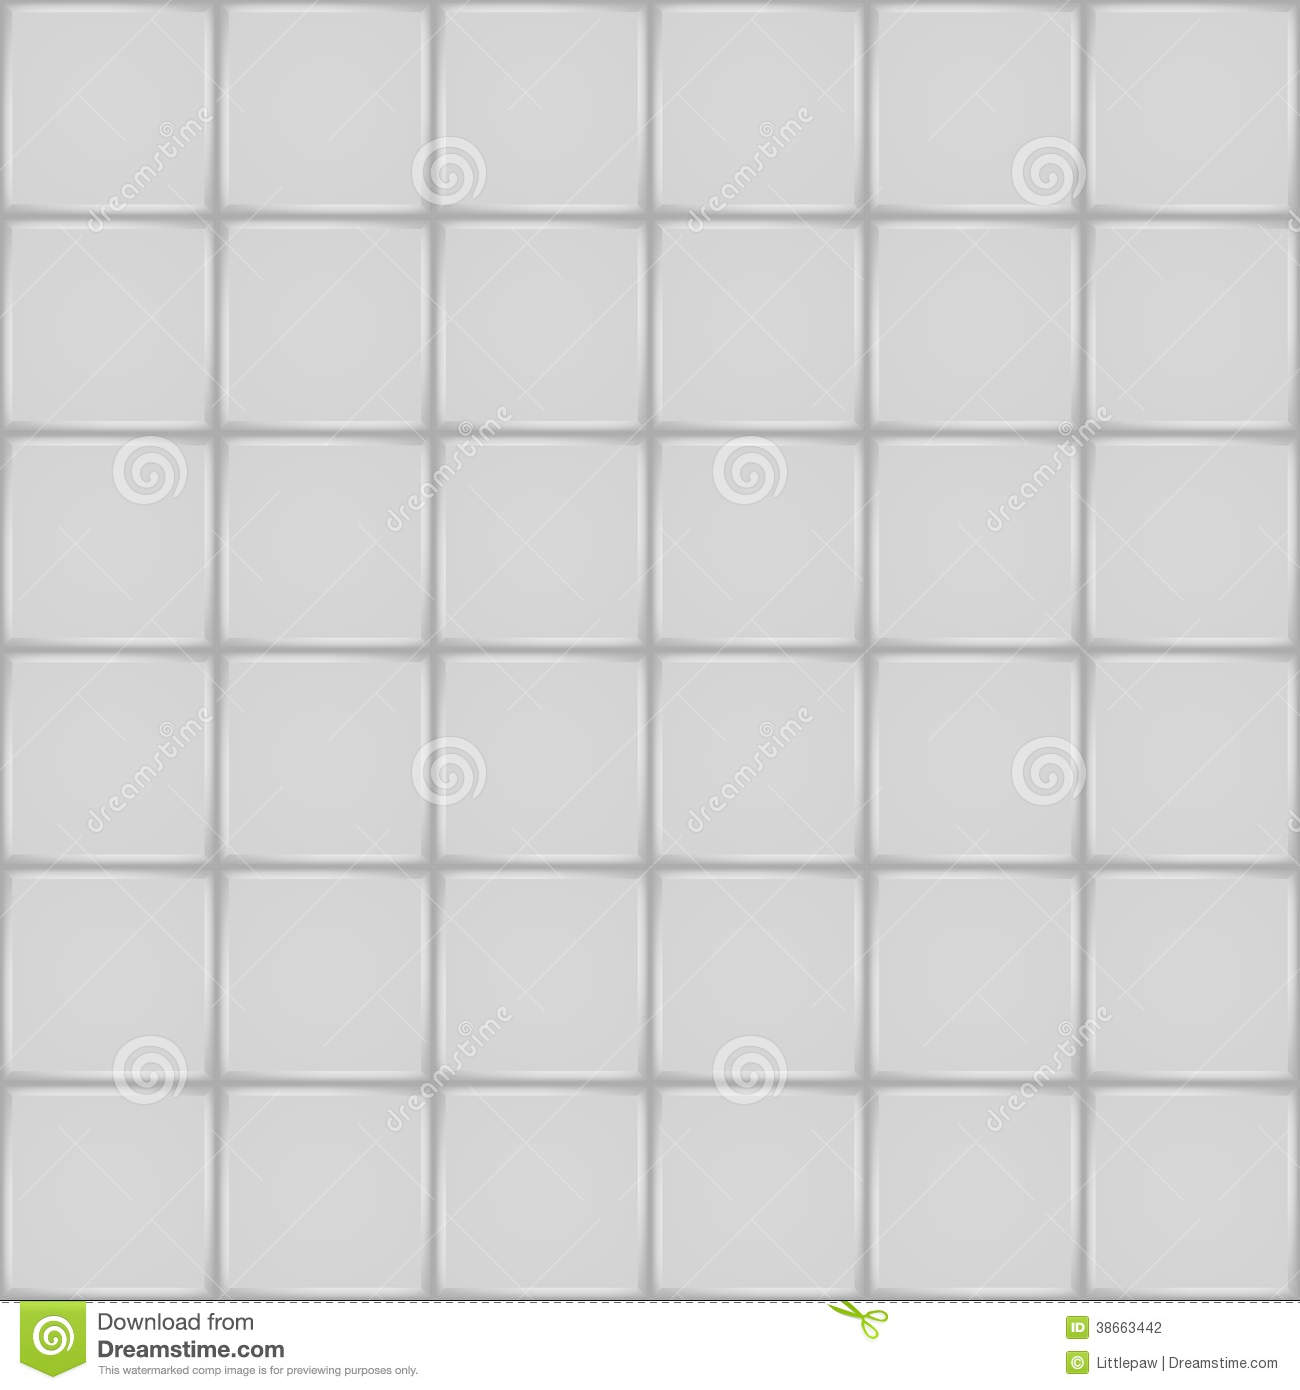 Bright Bathroom Ideas White Ceramic Tile Seamless Pattern Stock Vector